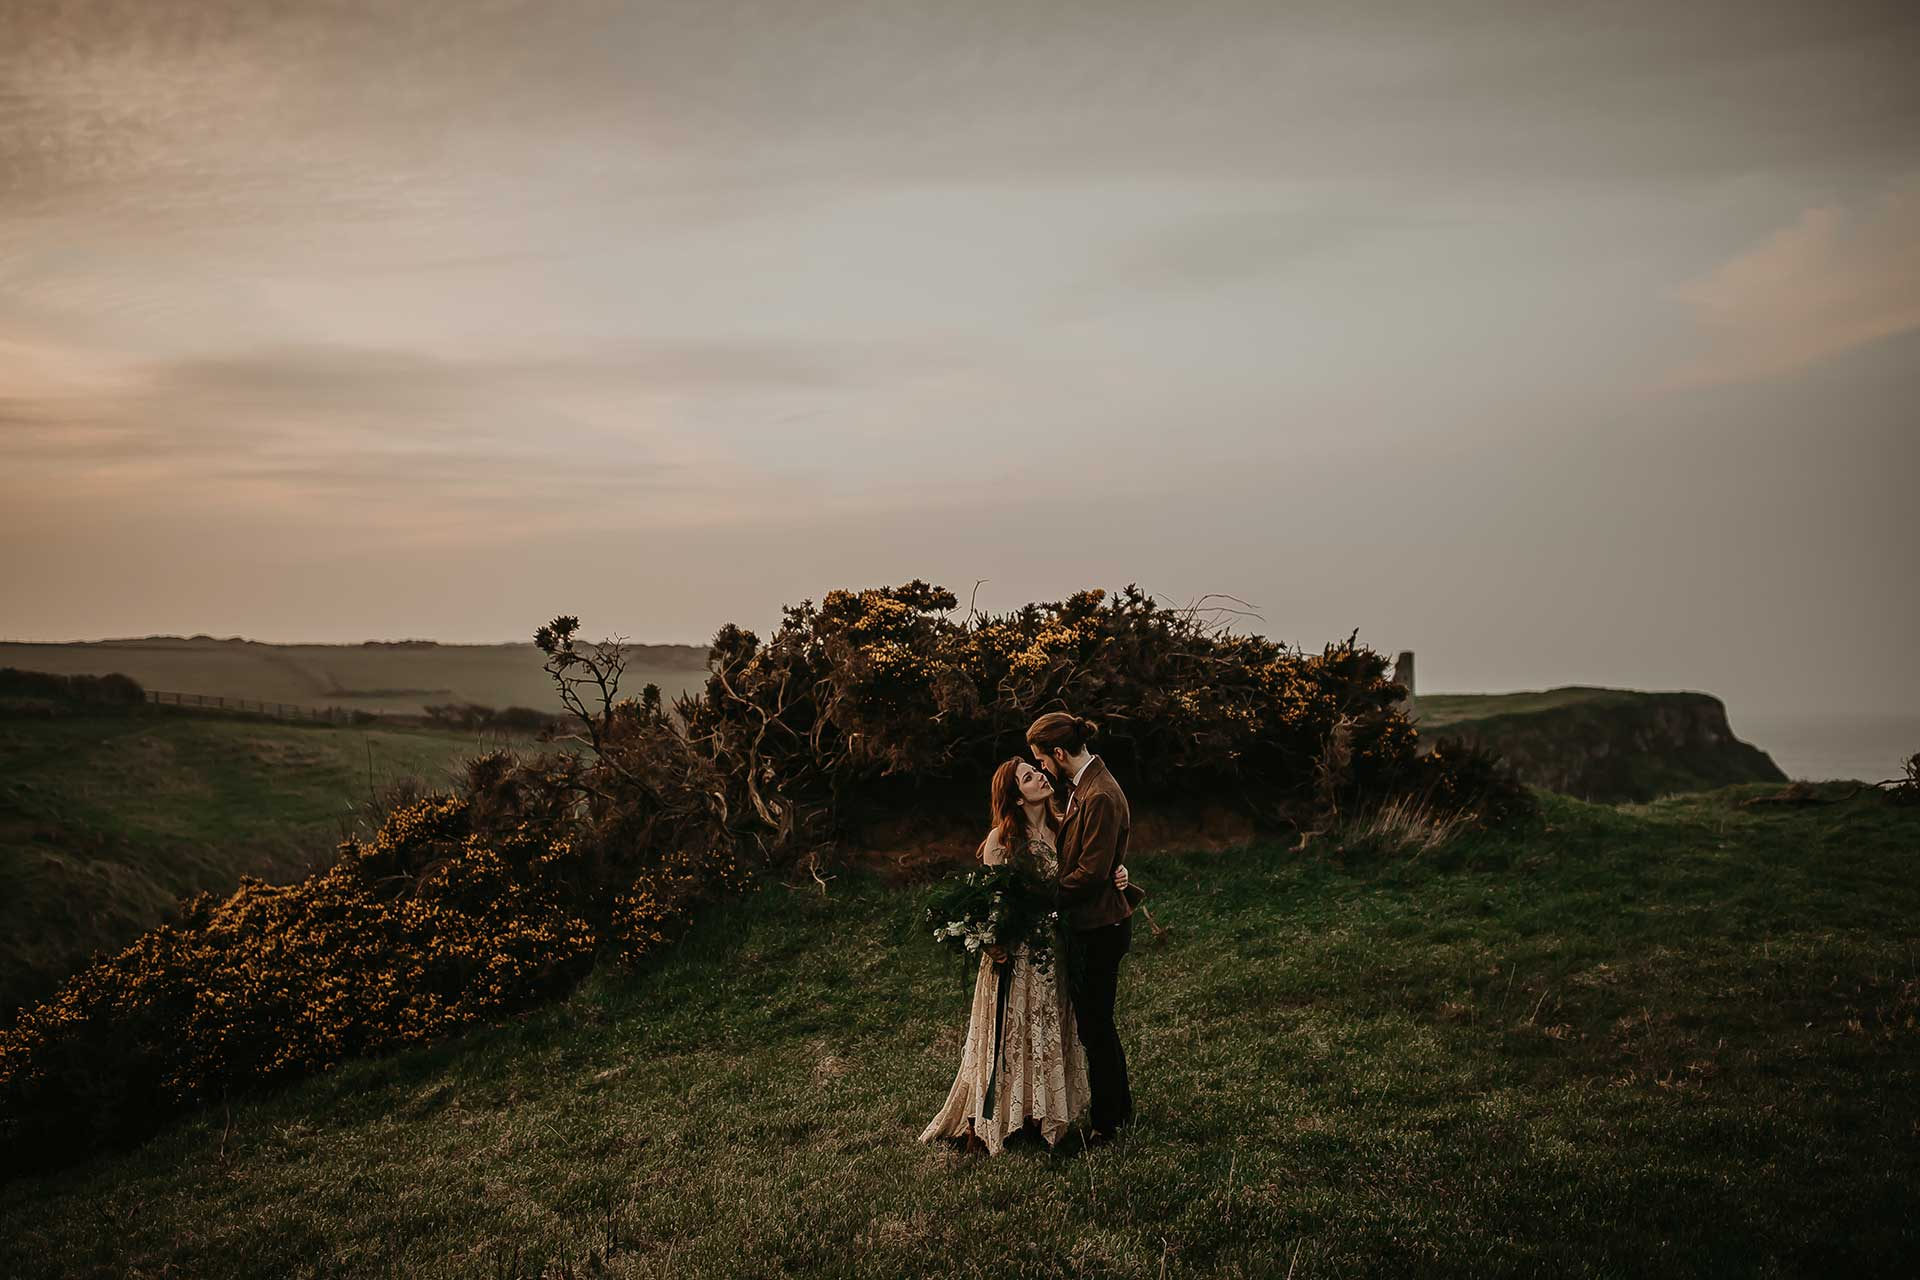 ivy-ink-photography-couples-romance-nature-travel-008.jpg